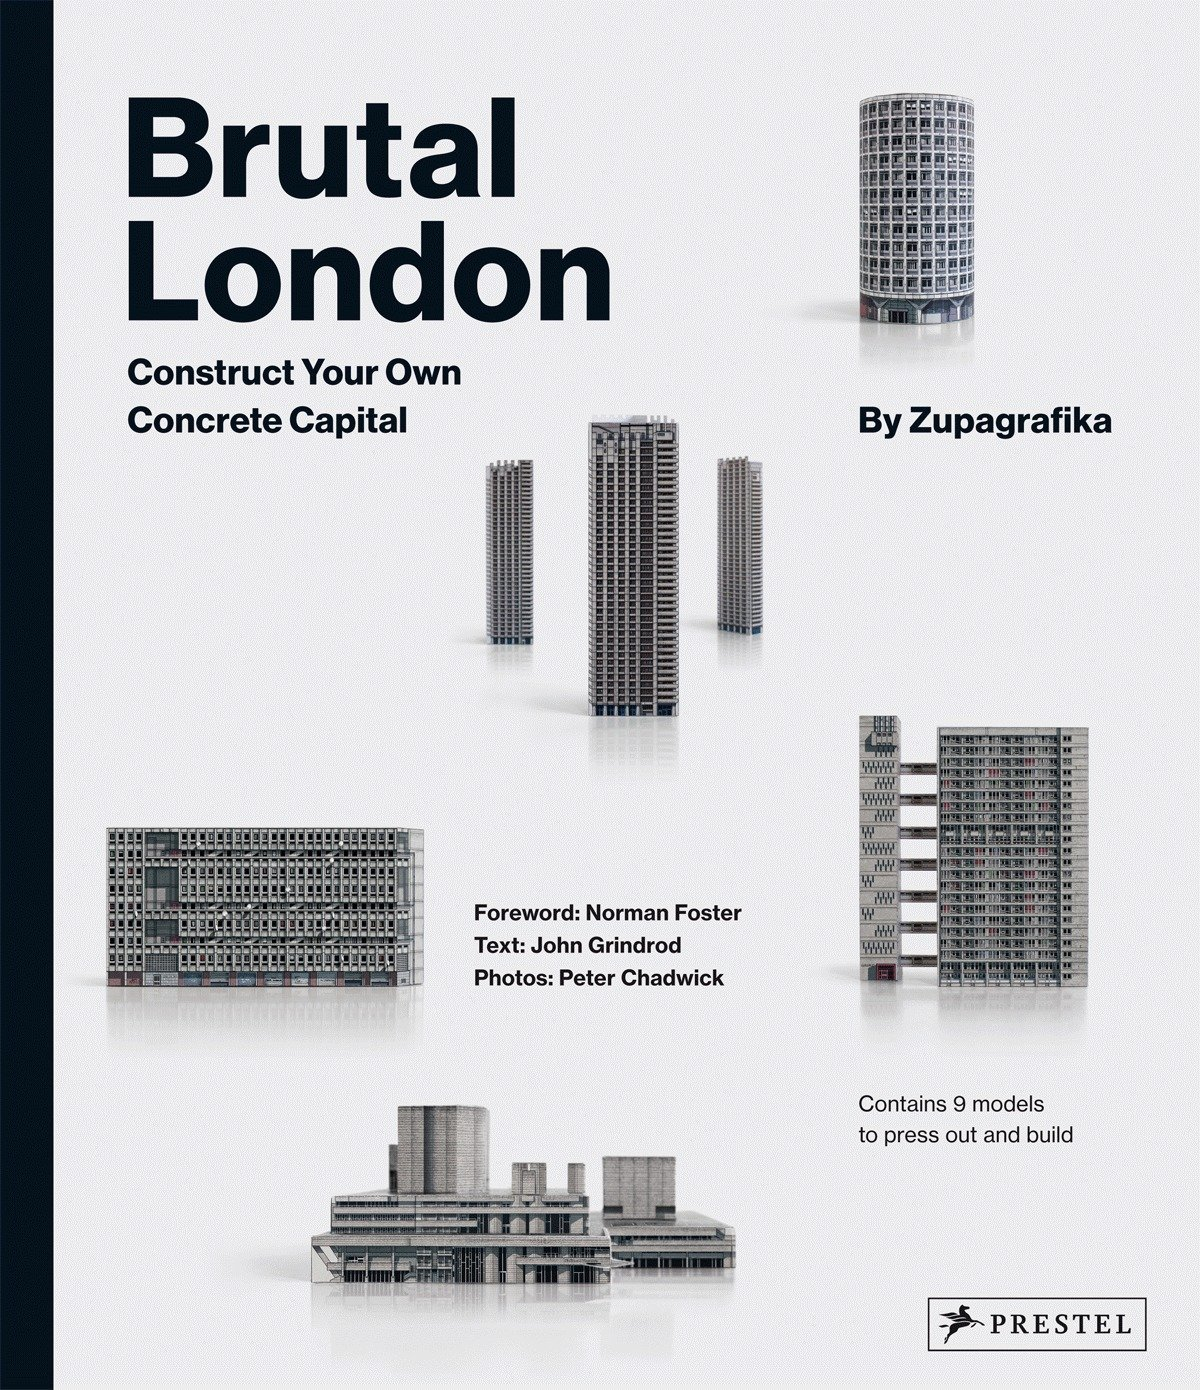 Brutal London: Construct Your Own Concrete Capital by Zupagrafika